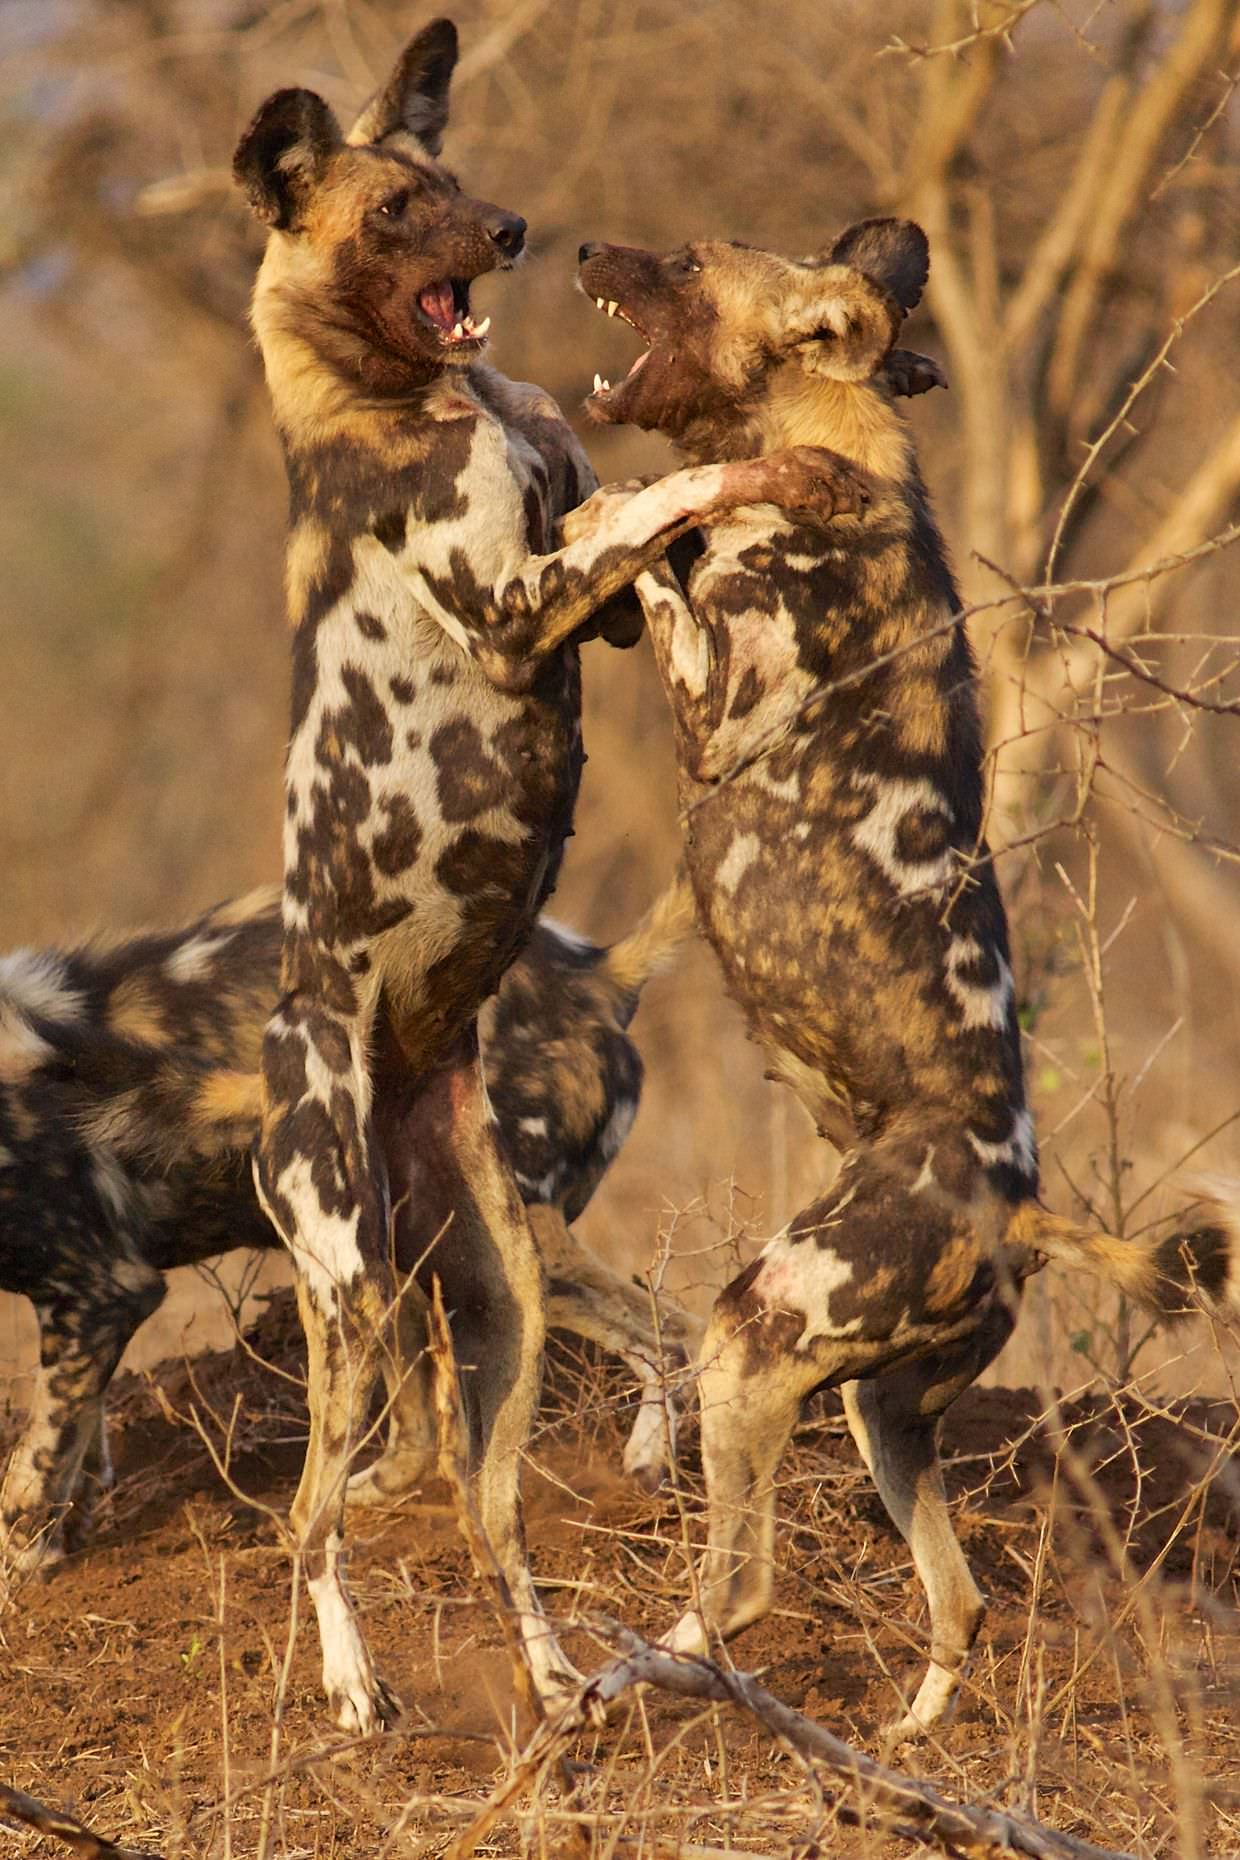 Wild dogs play fighting in the morning sun